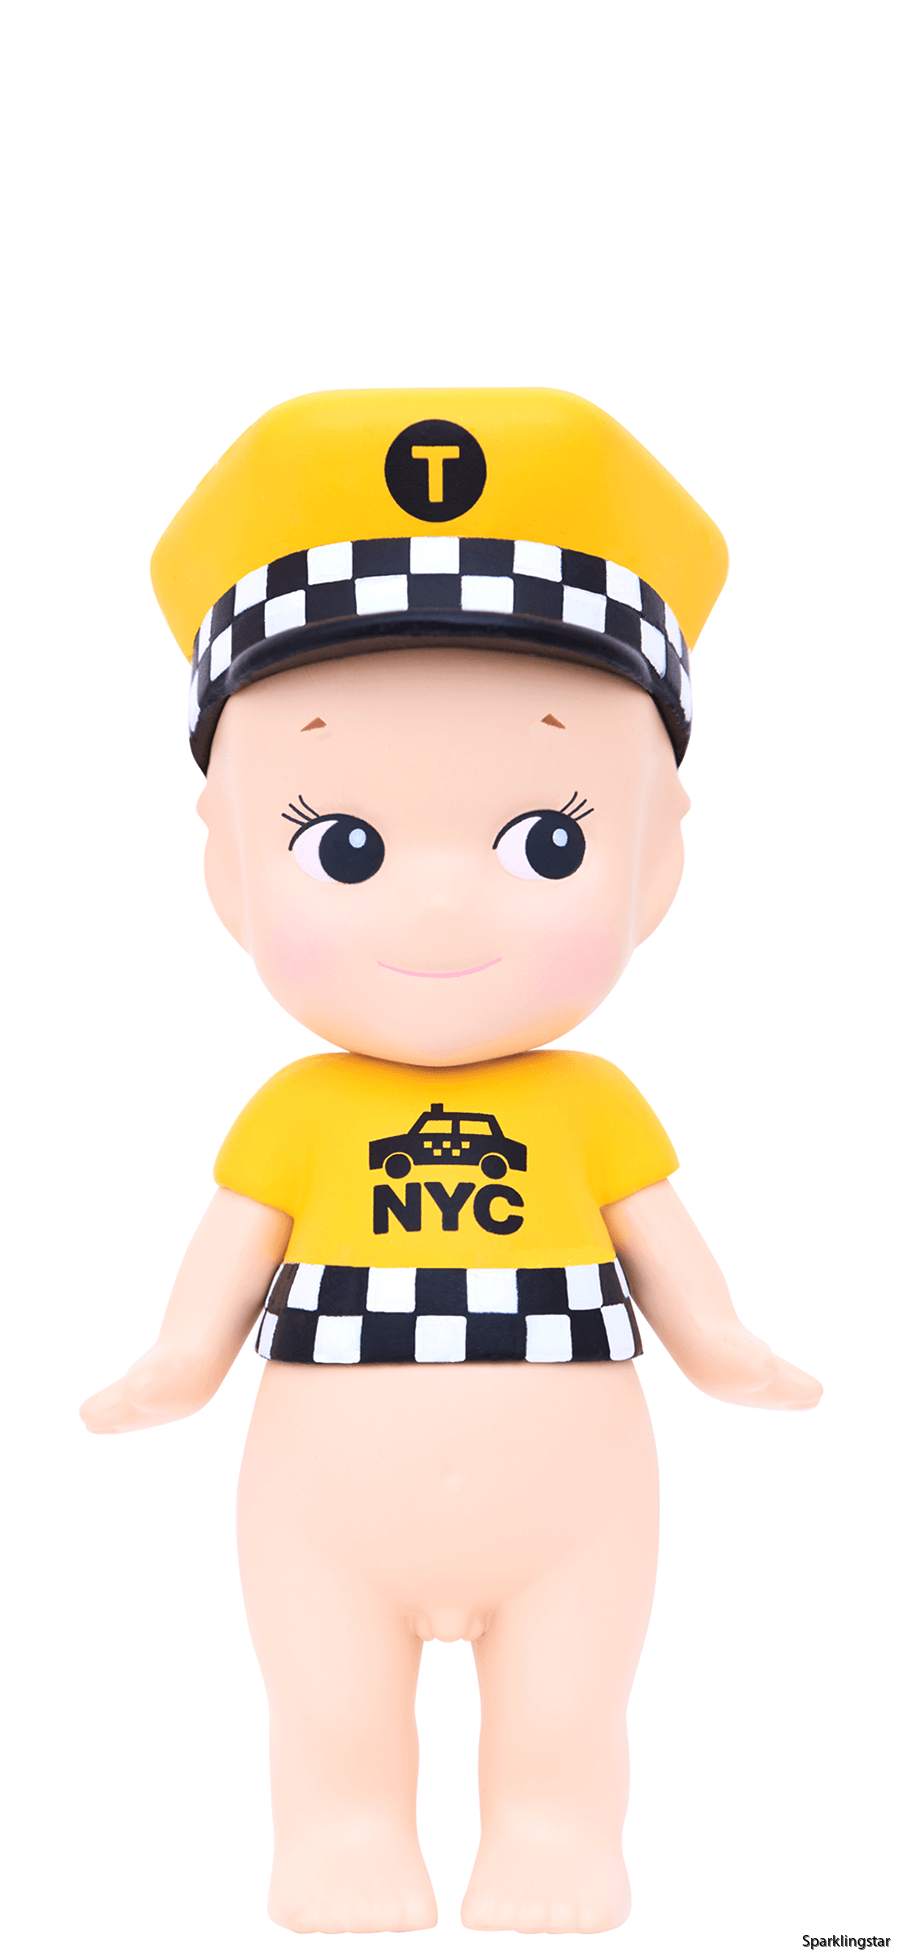 Sonny Angel In New York 2019 Yellow Cab